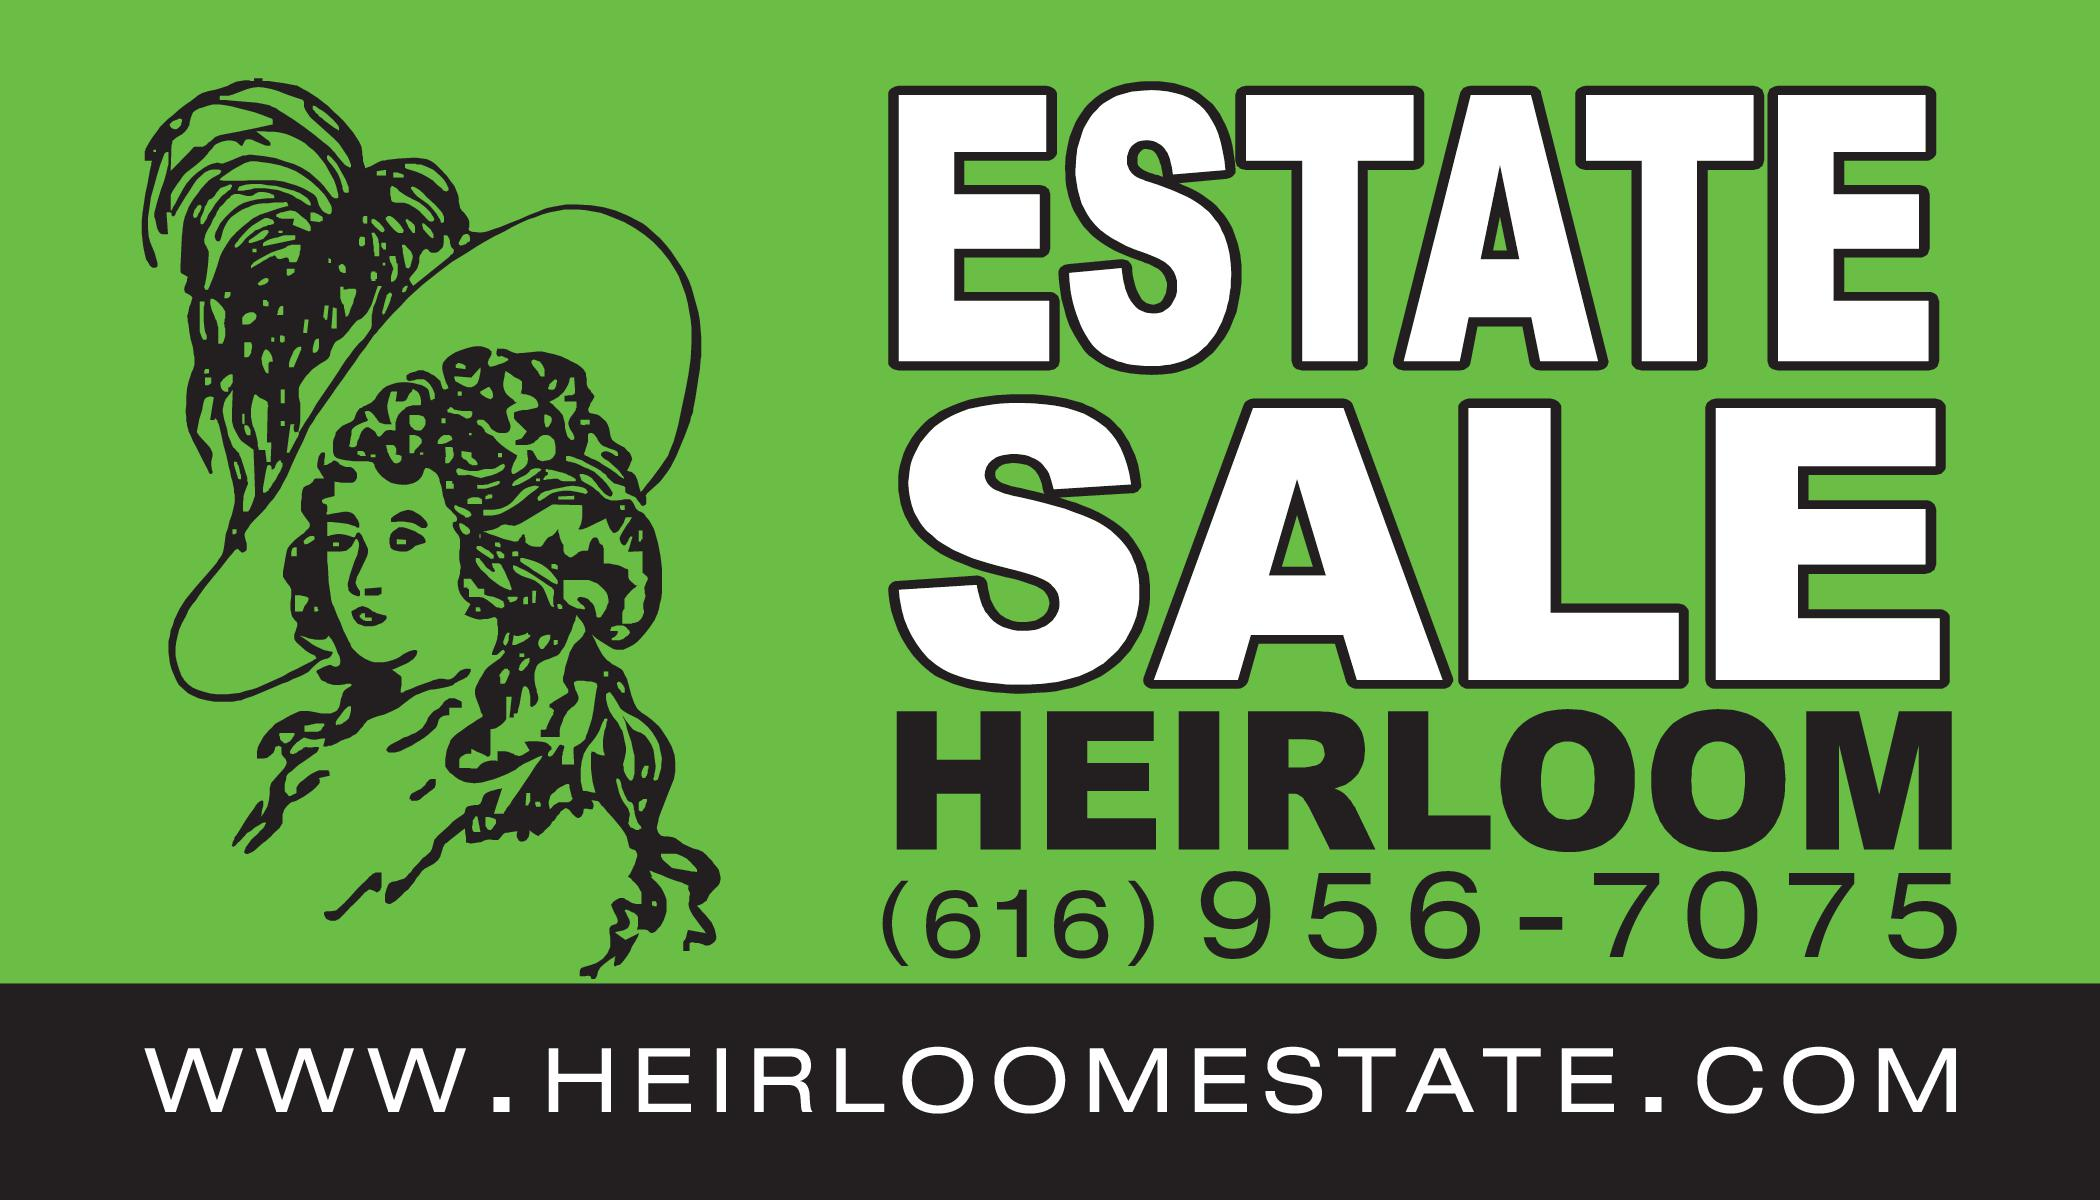 Heirloom Estate Services